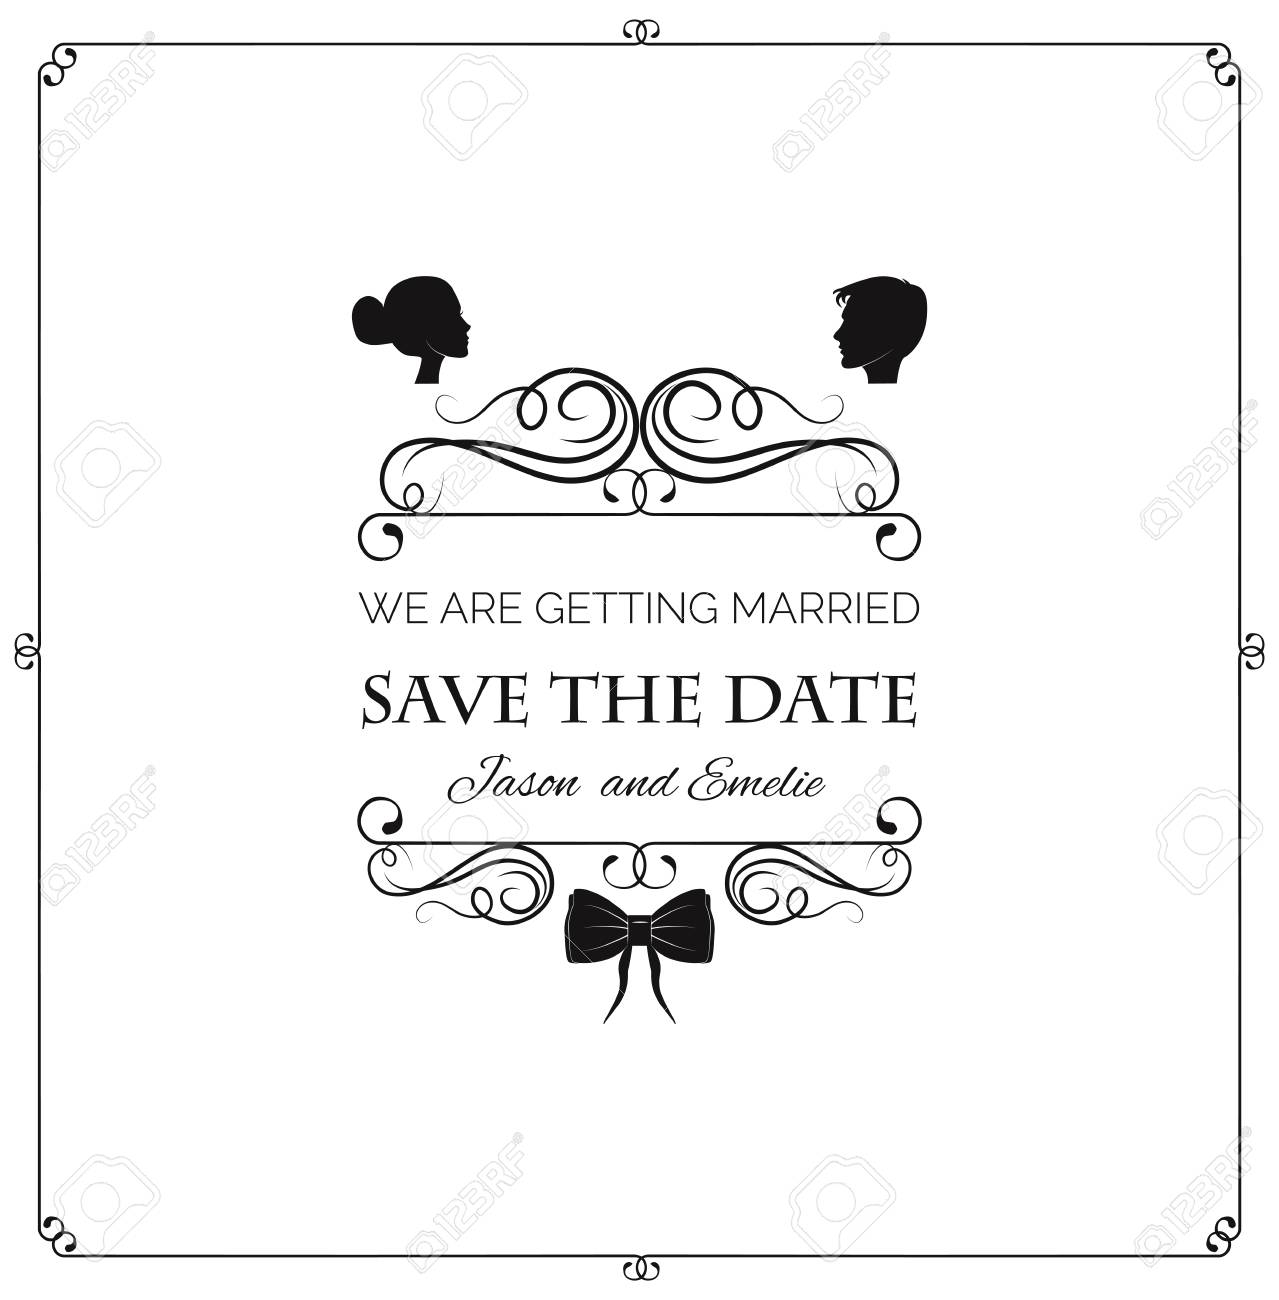 Wedding invitation vector silhouette bride and groom wedding vector wedding invitation vector silhouette bride and groom wedding couple save the date vector illustration heart and bow tie stopboris Gallery